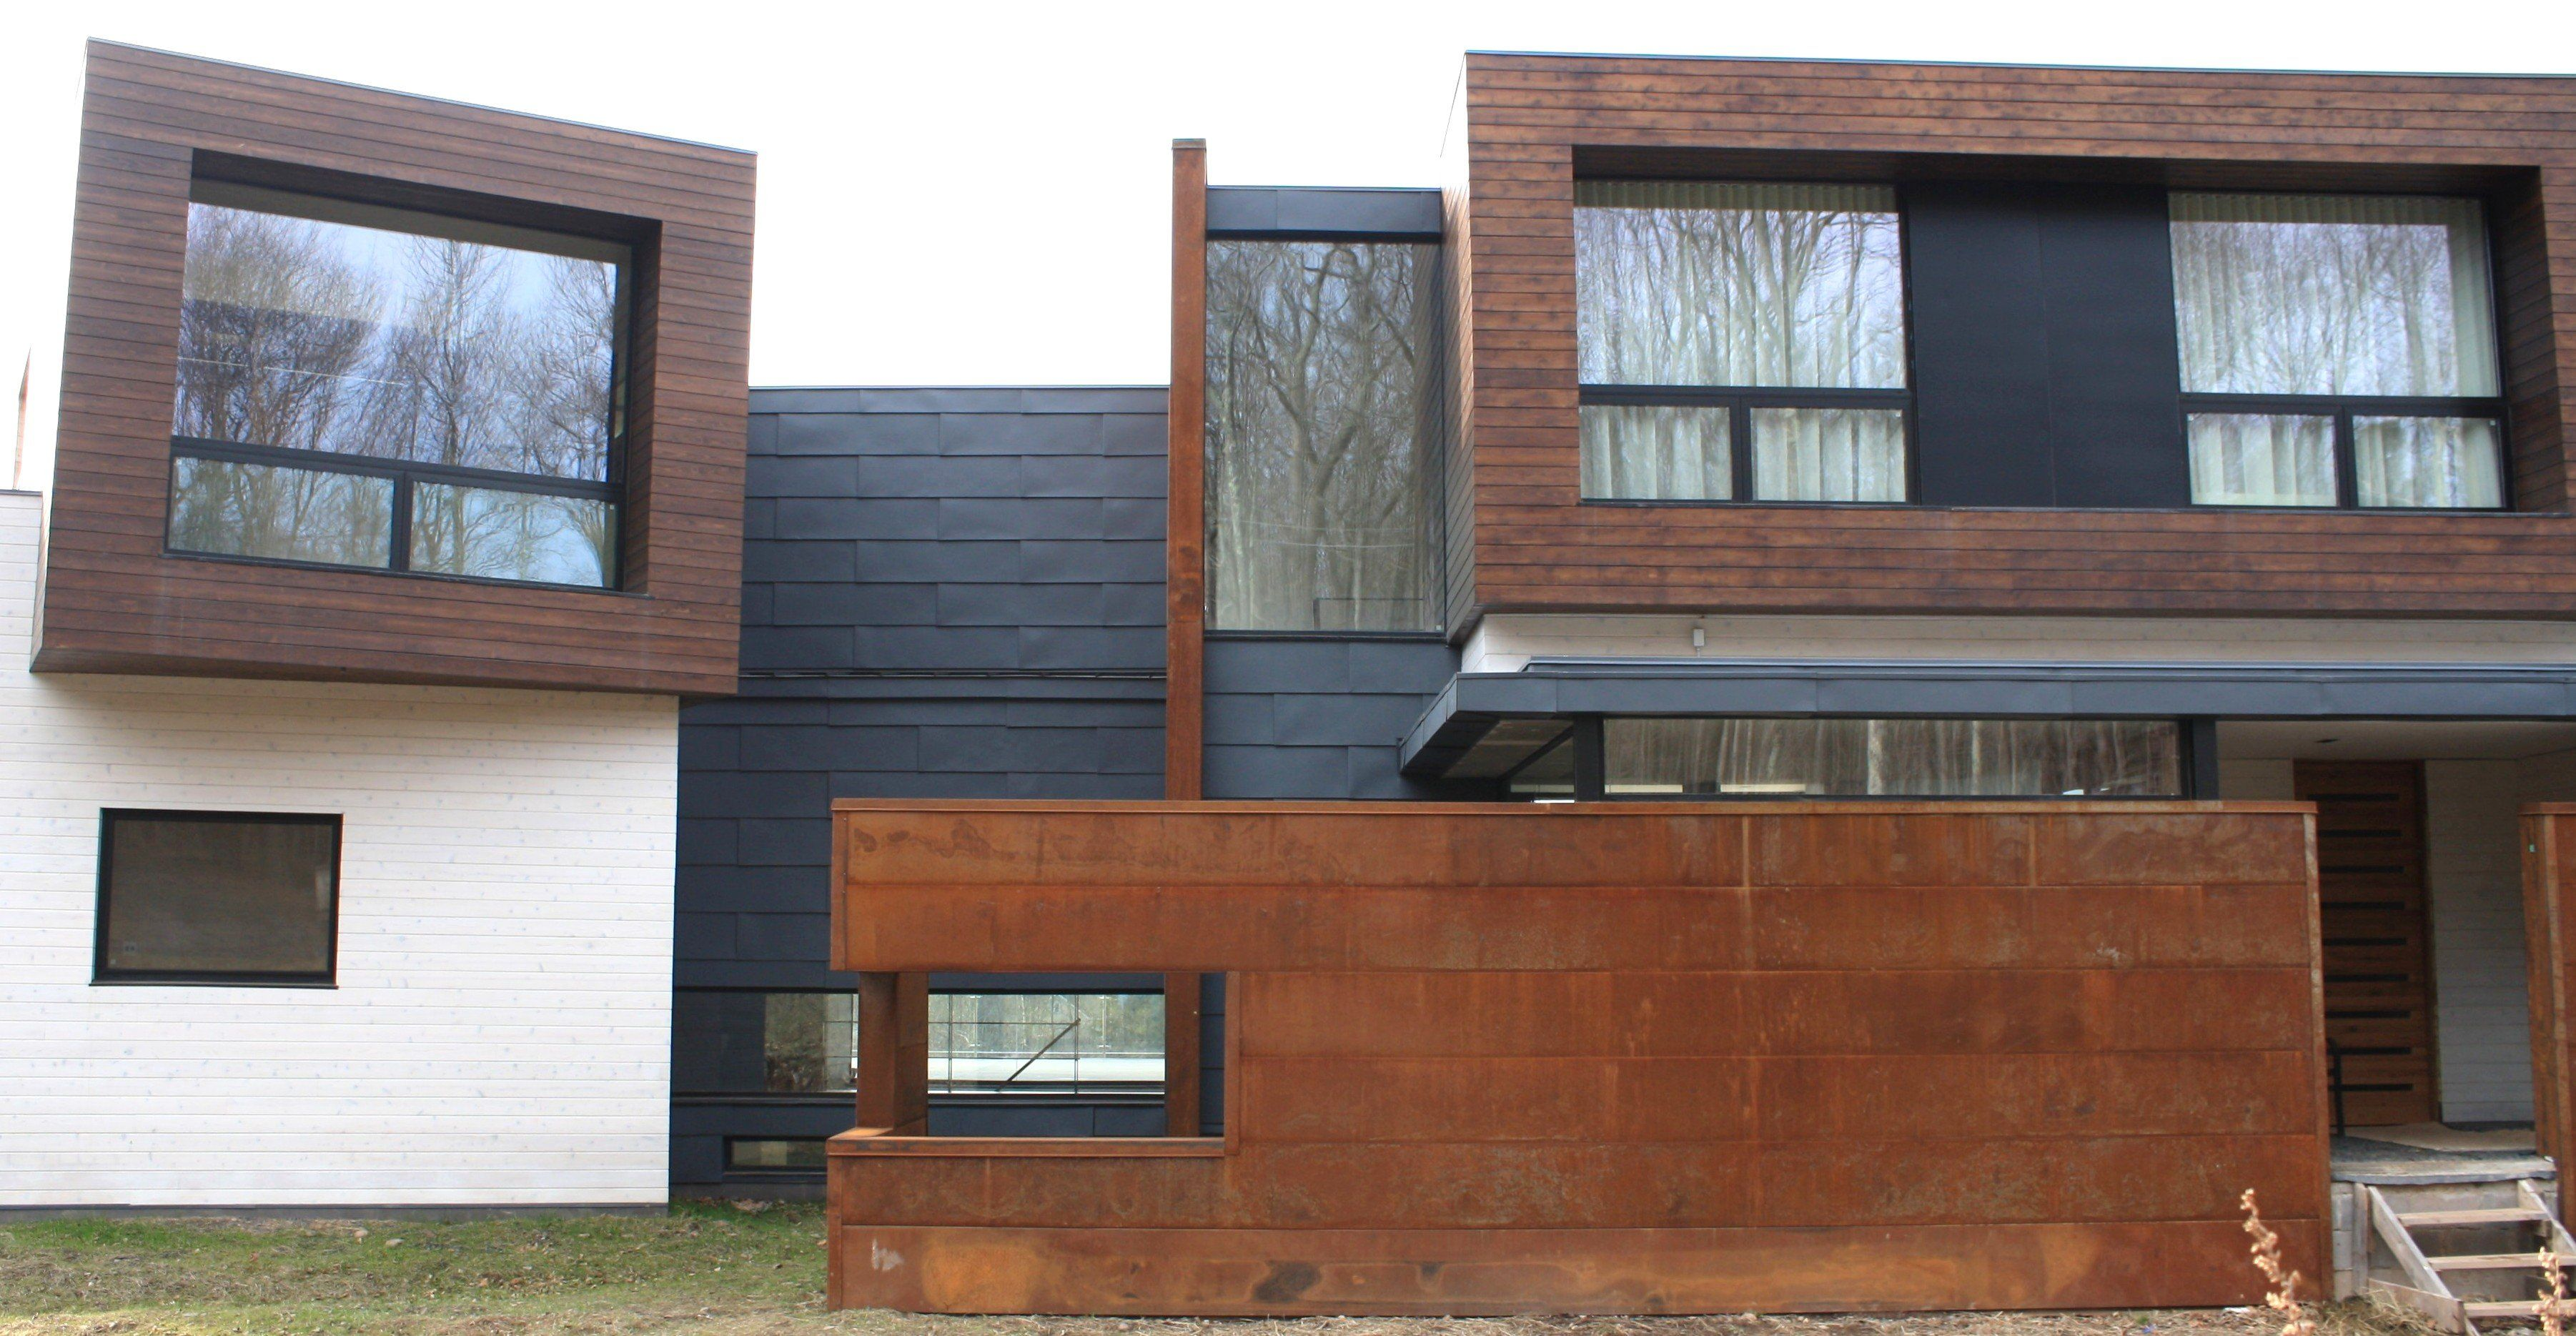 Image Of Corrugated Steel Siding Dimensions Exterior Wall Panels Steel Siding Wooden House Design